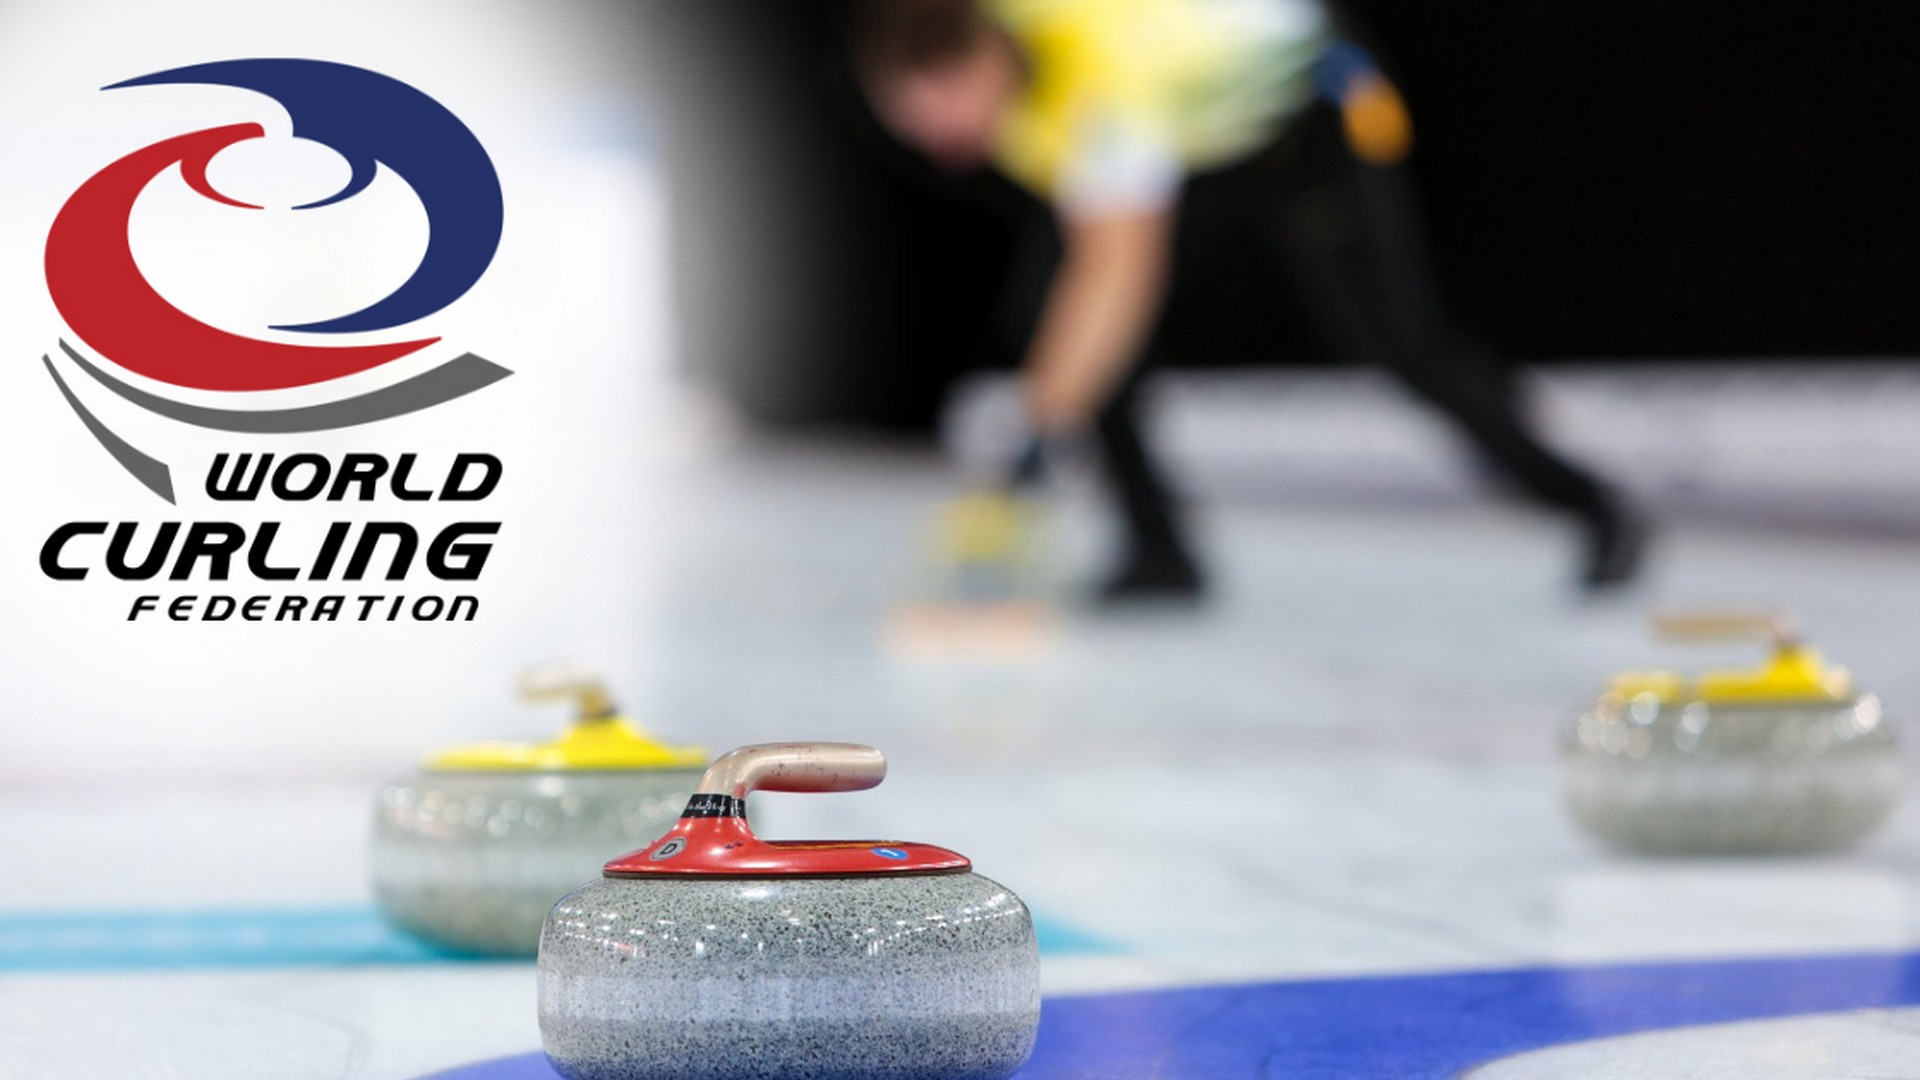 Fédération – World Curling Federation (1) Logo